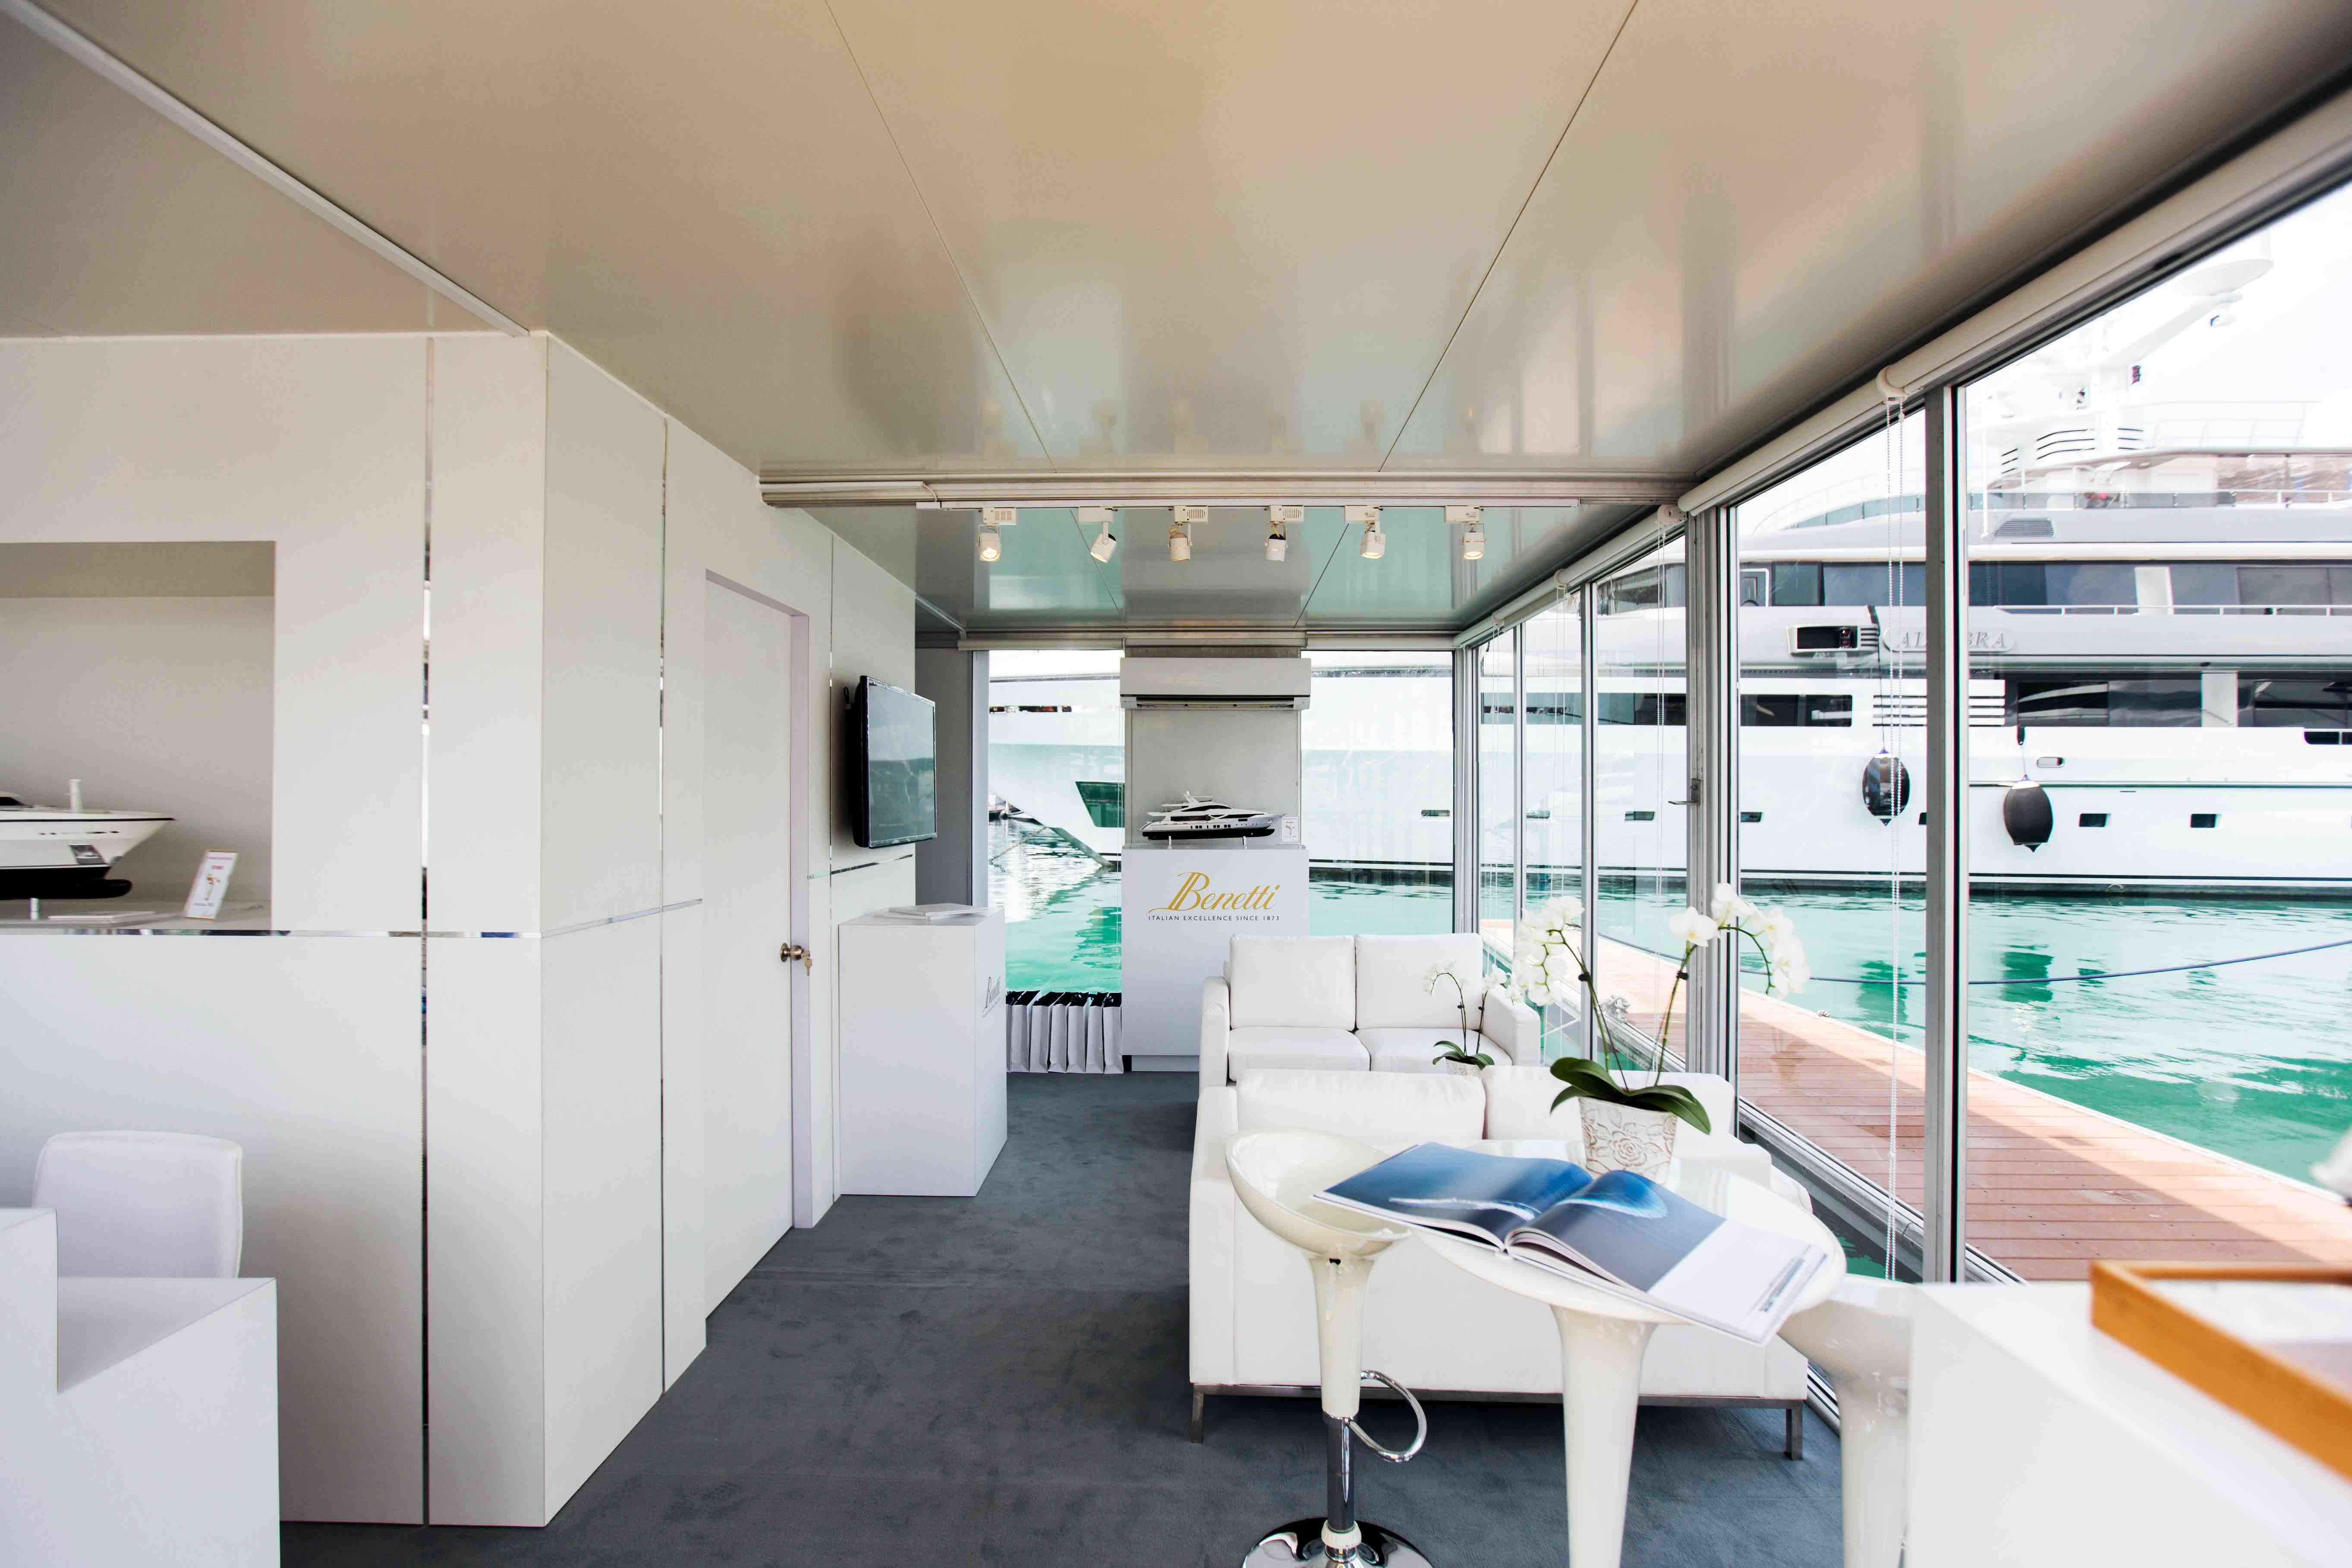 Luxury superyacht keyla interior by hot lab luxury yacht charter - Benetti S Stand At The 2015 Singapore Yacht Show